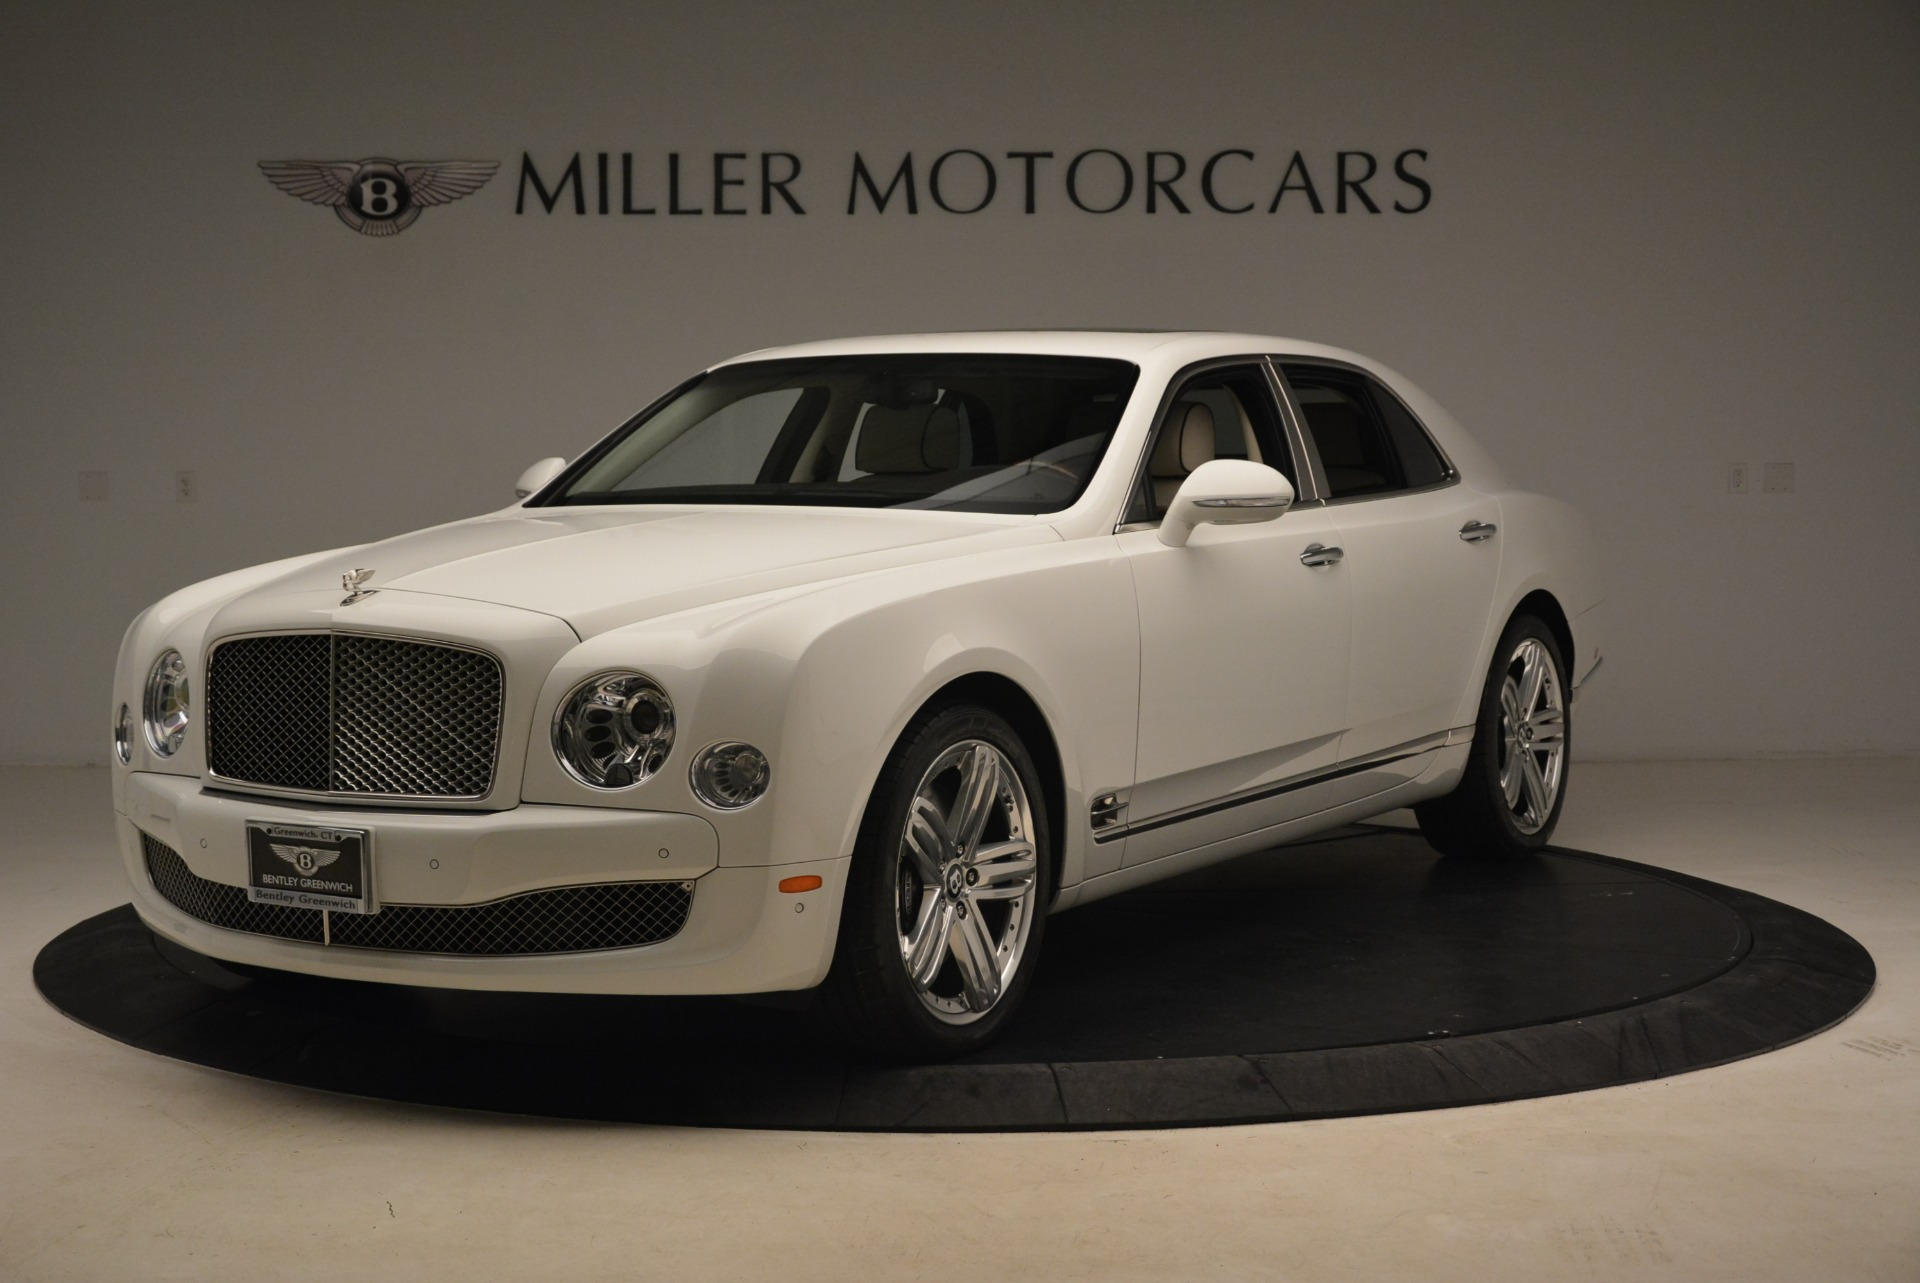 Used 2013 Bentley Mulsanne for sale Sold at Bentley Greenwich in Greenwich CT 06830 1